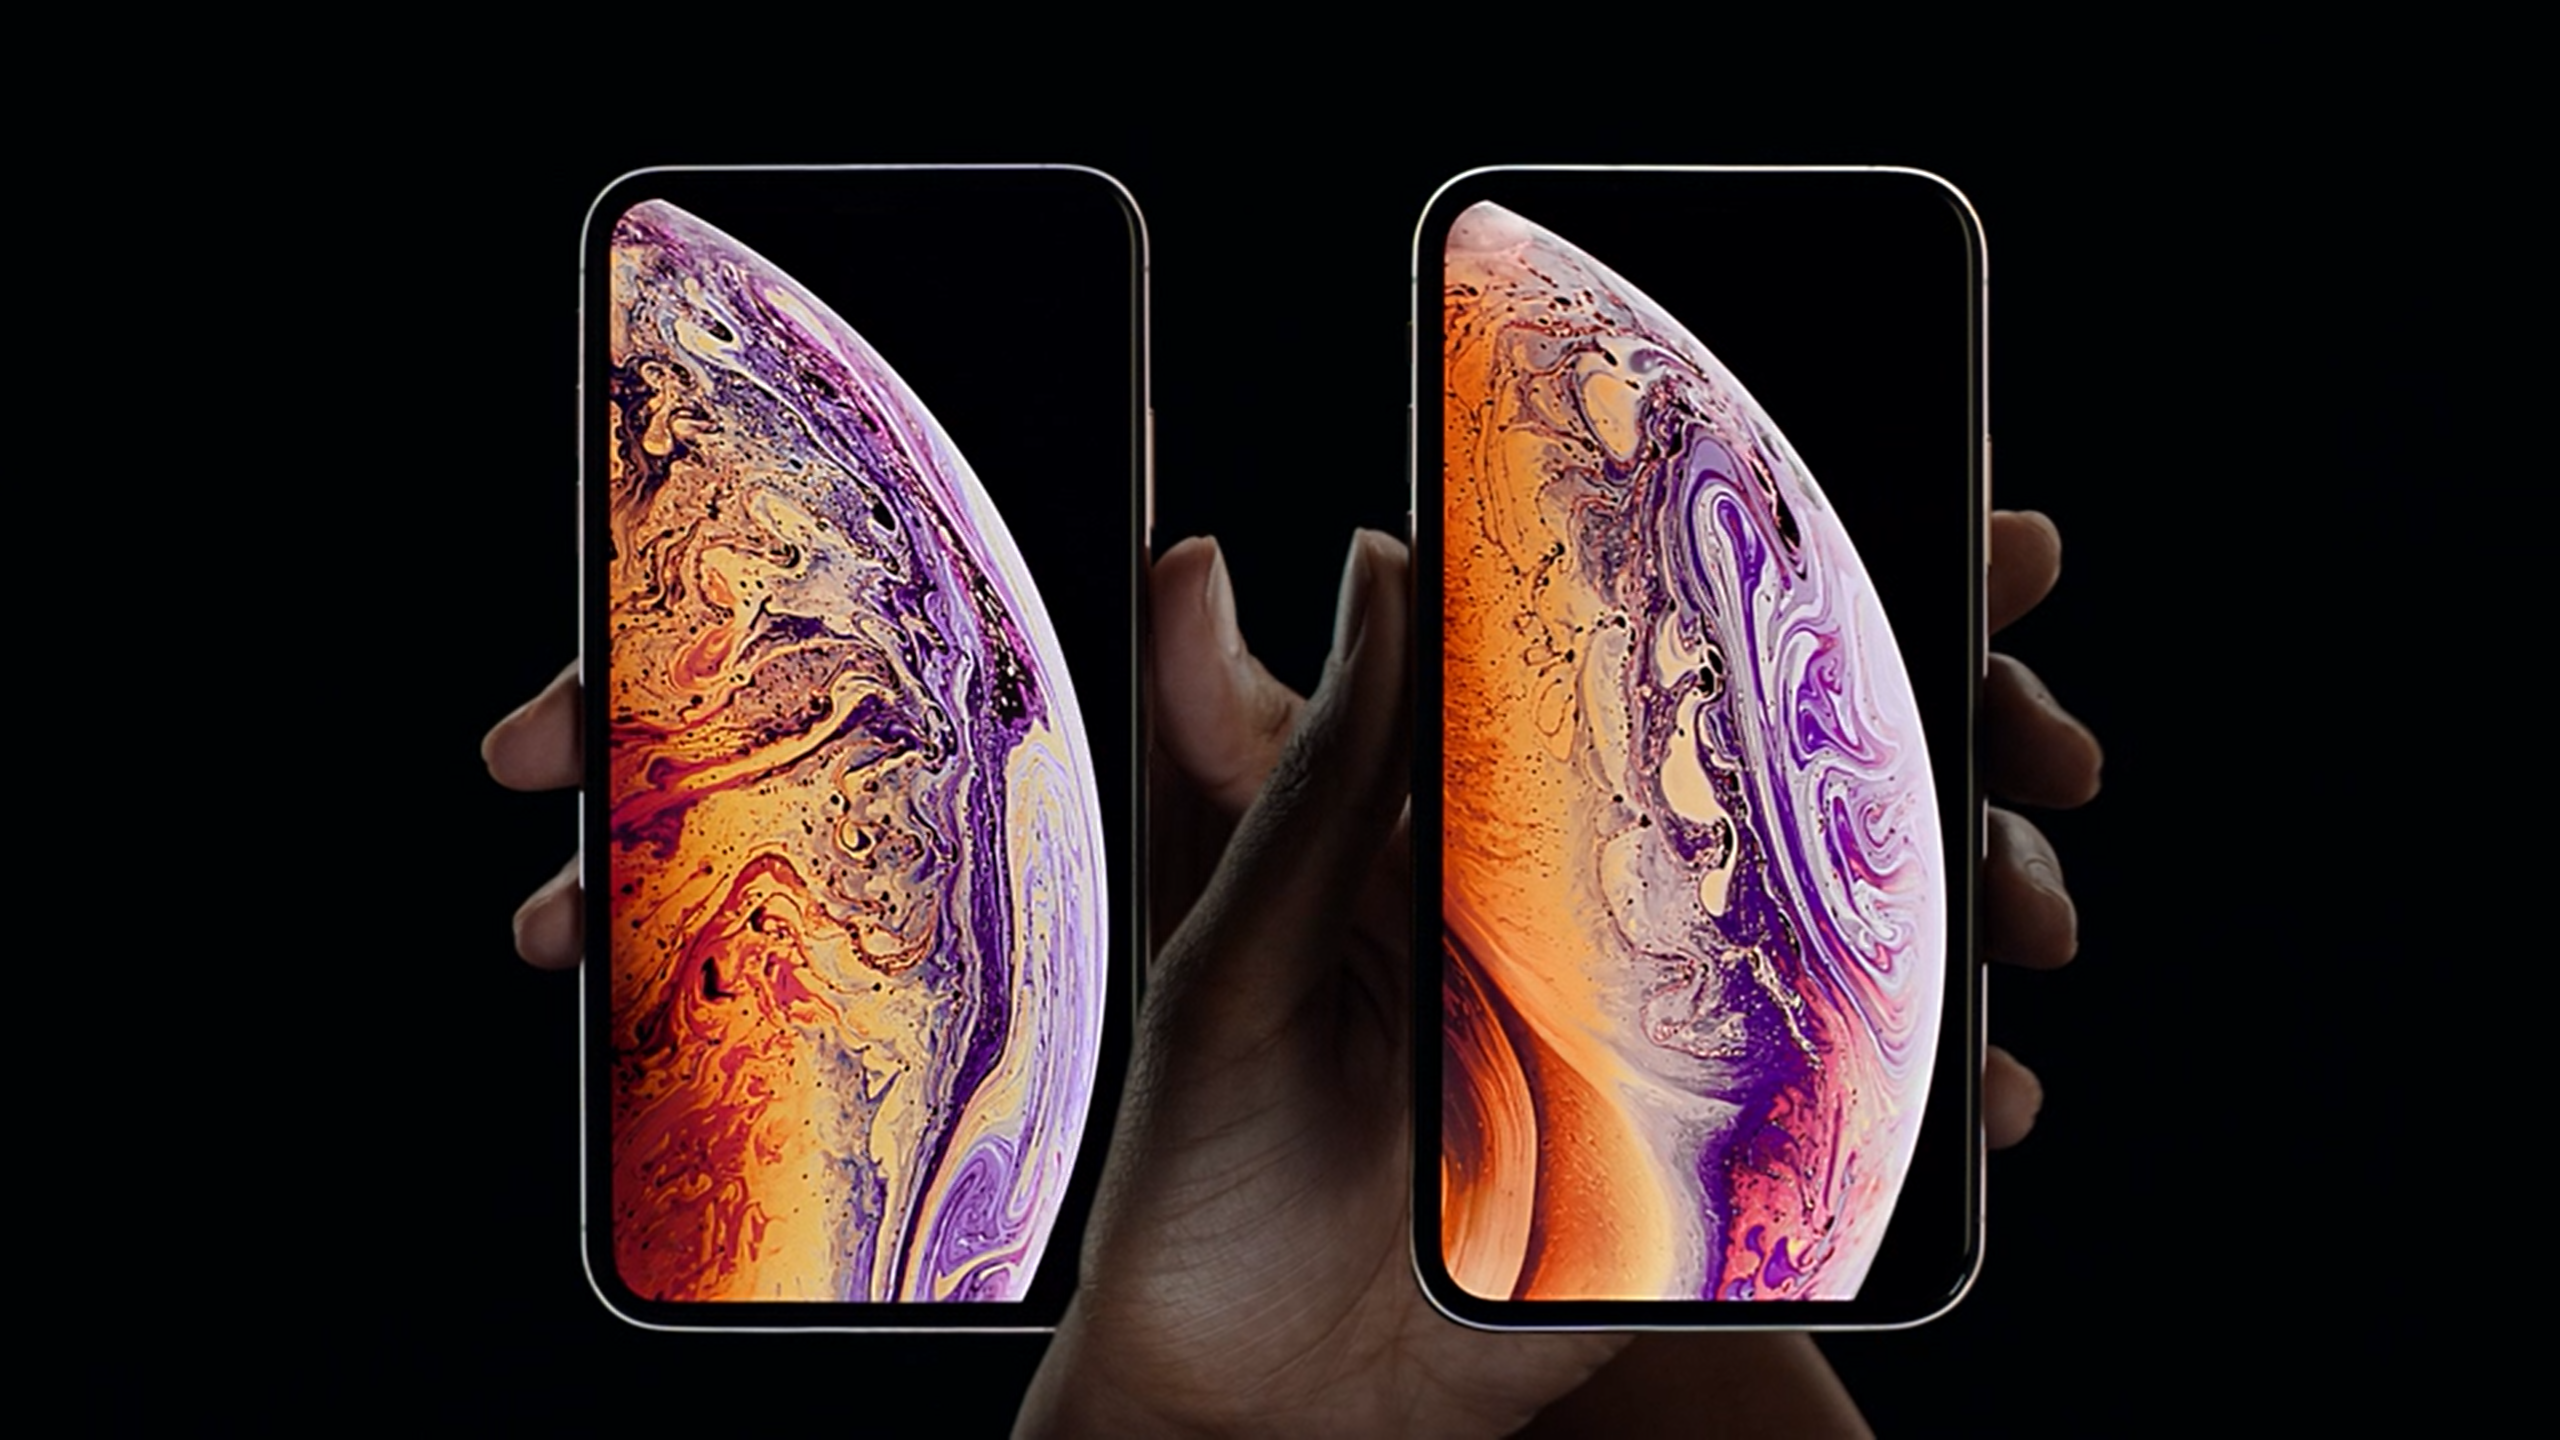 Fondos Iphone XR